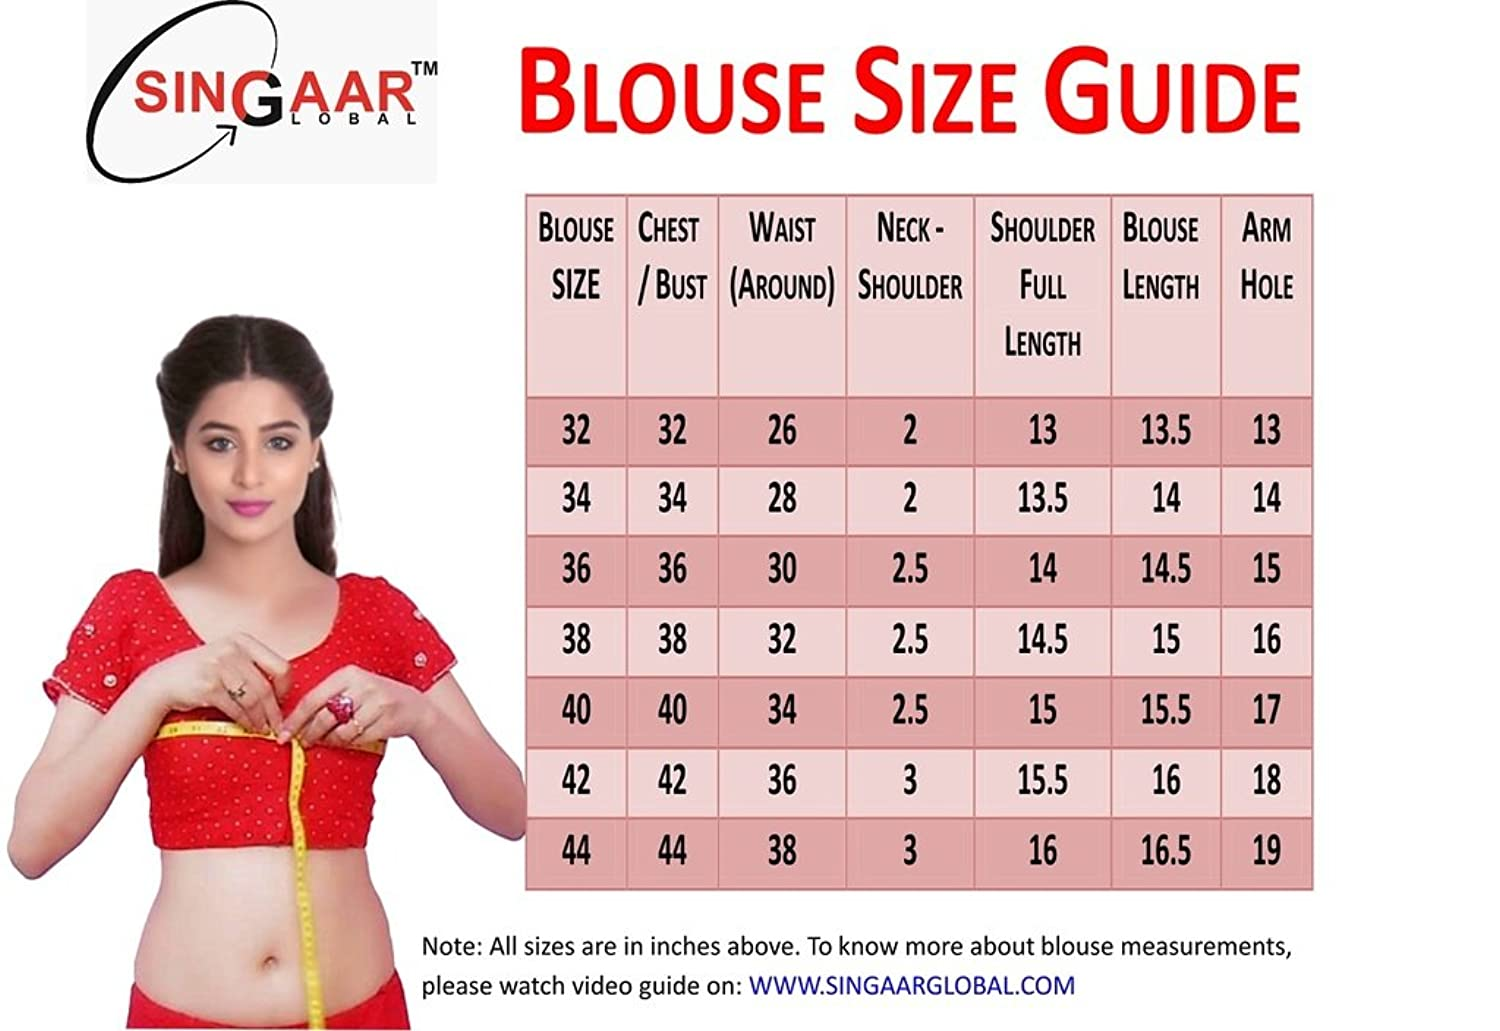 readymade blouse size chart: Singaar readymade blouse design all sizes 100 perfect fitting